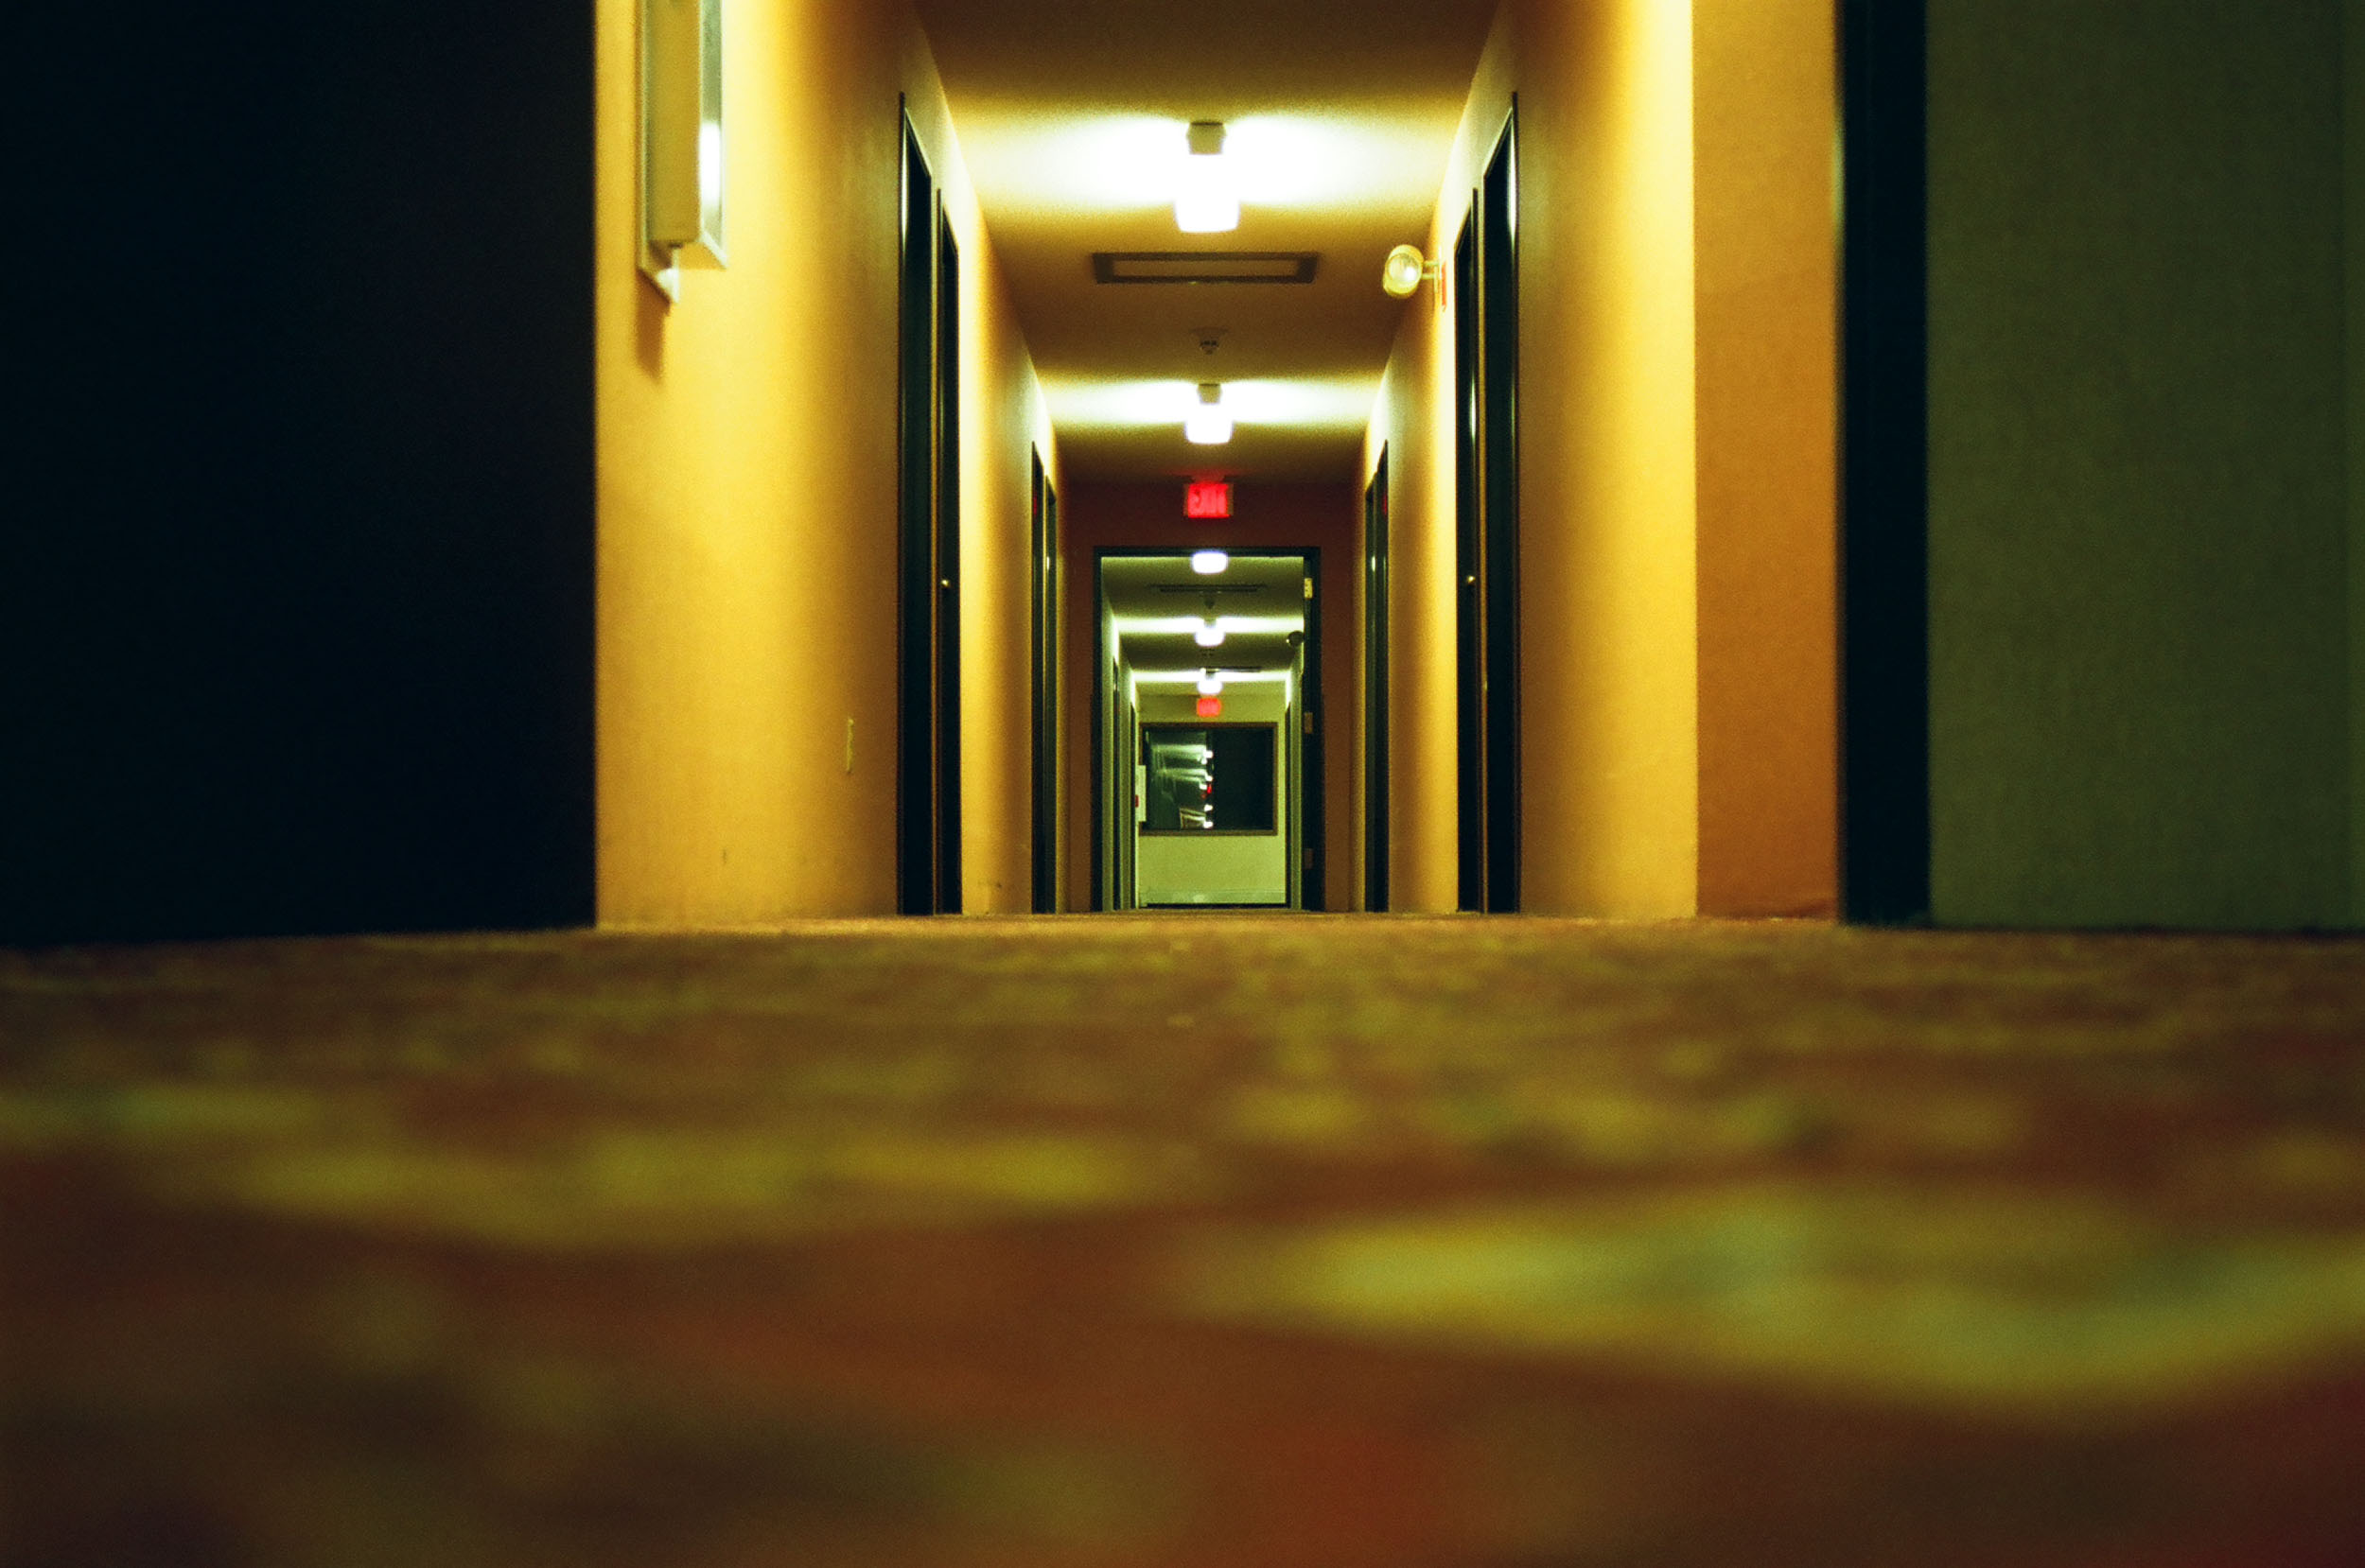 Motel Hallway, North Dakota